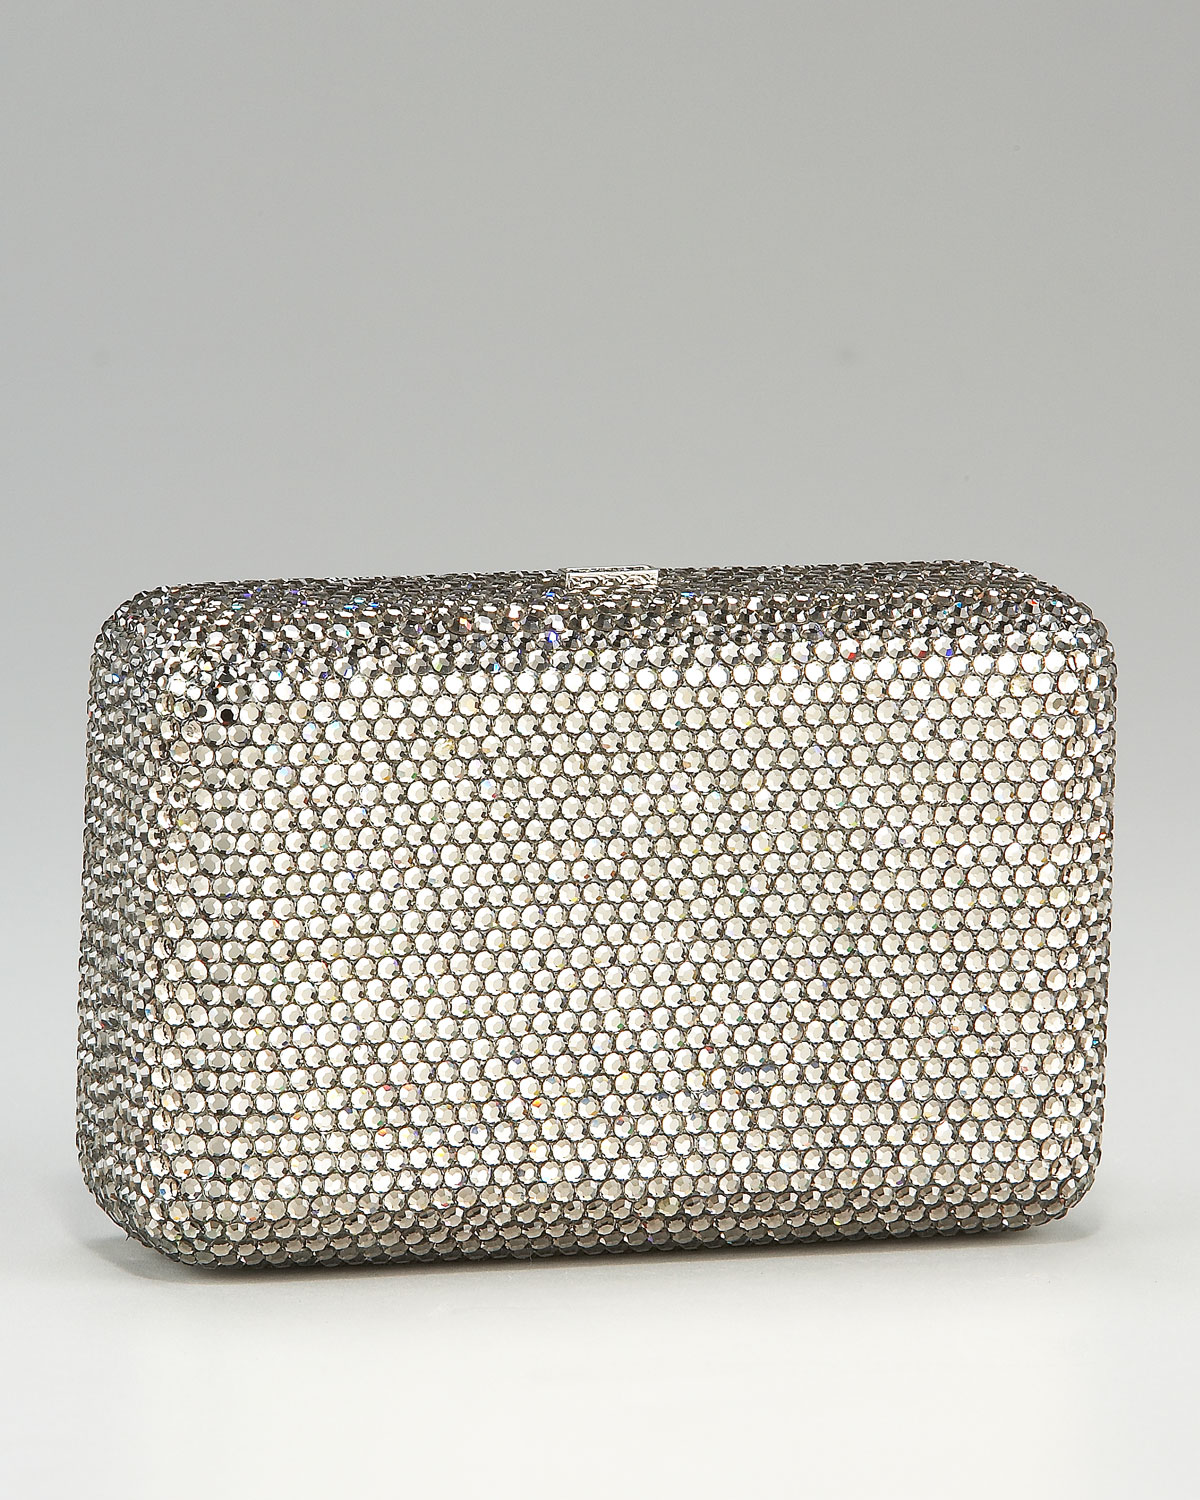 Wedding-splurge-top-10-for-fall-2012-judith-leiber-clutch-2.original